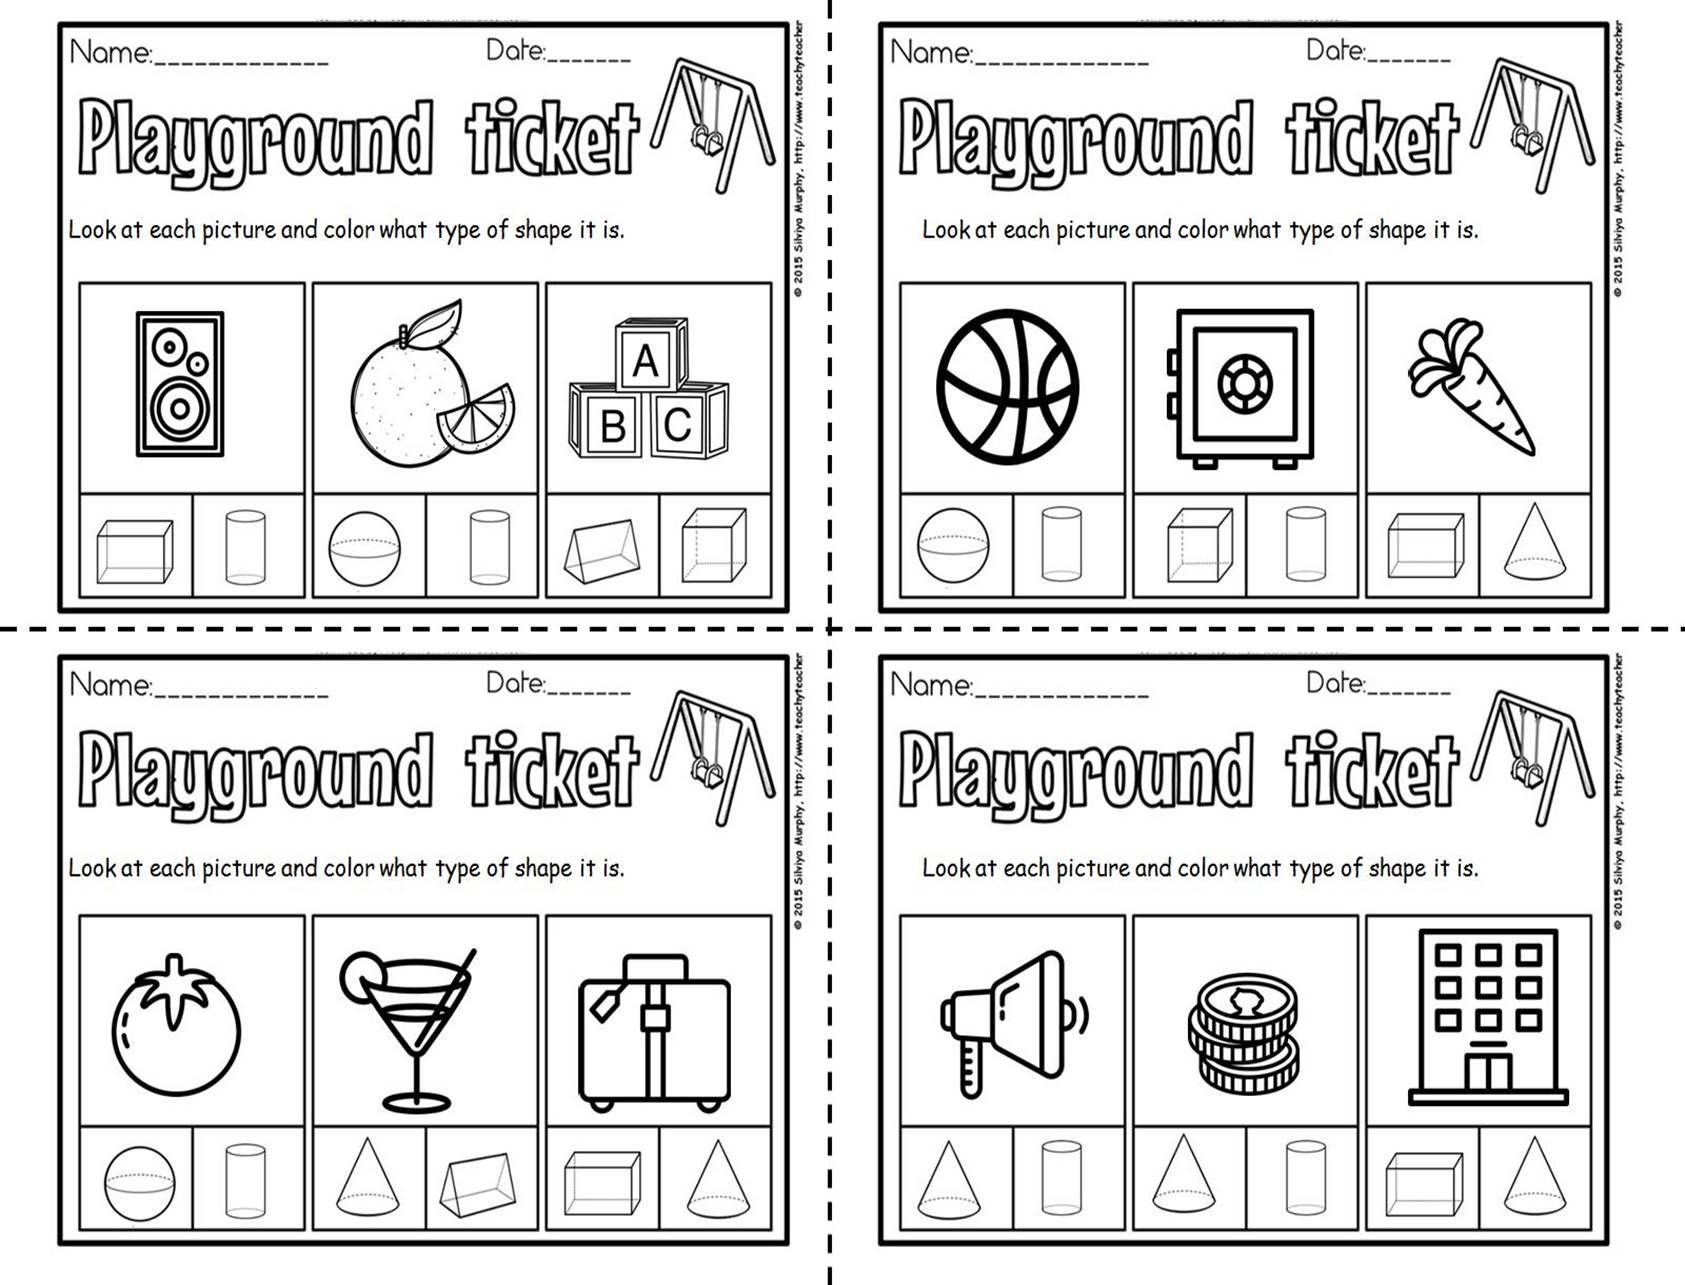 Get Your Kids Exited About 3d Shapes With These Cute Free Exit Tickets Shapes Worksheet Kindergarten Kindergarten Worksheets Shapes Worksheets [ 1285 x 1685 Pixel ]